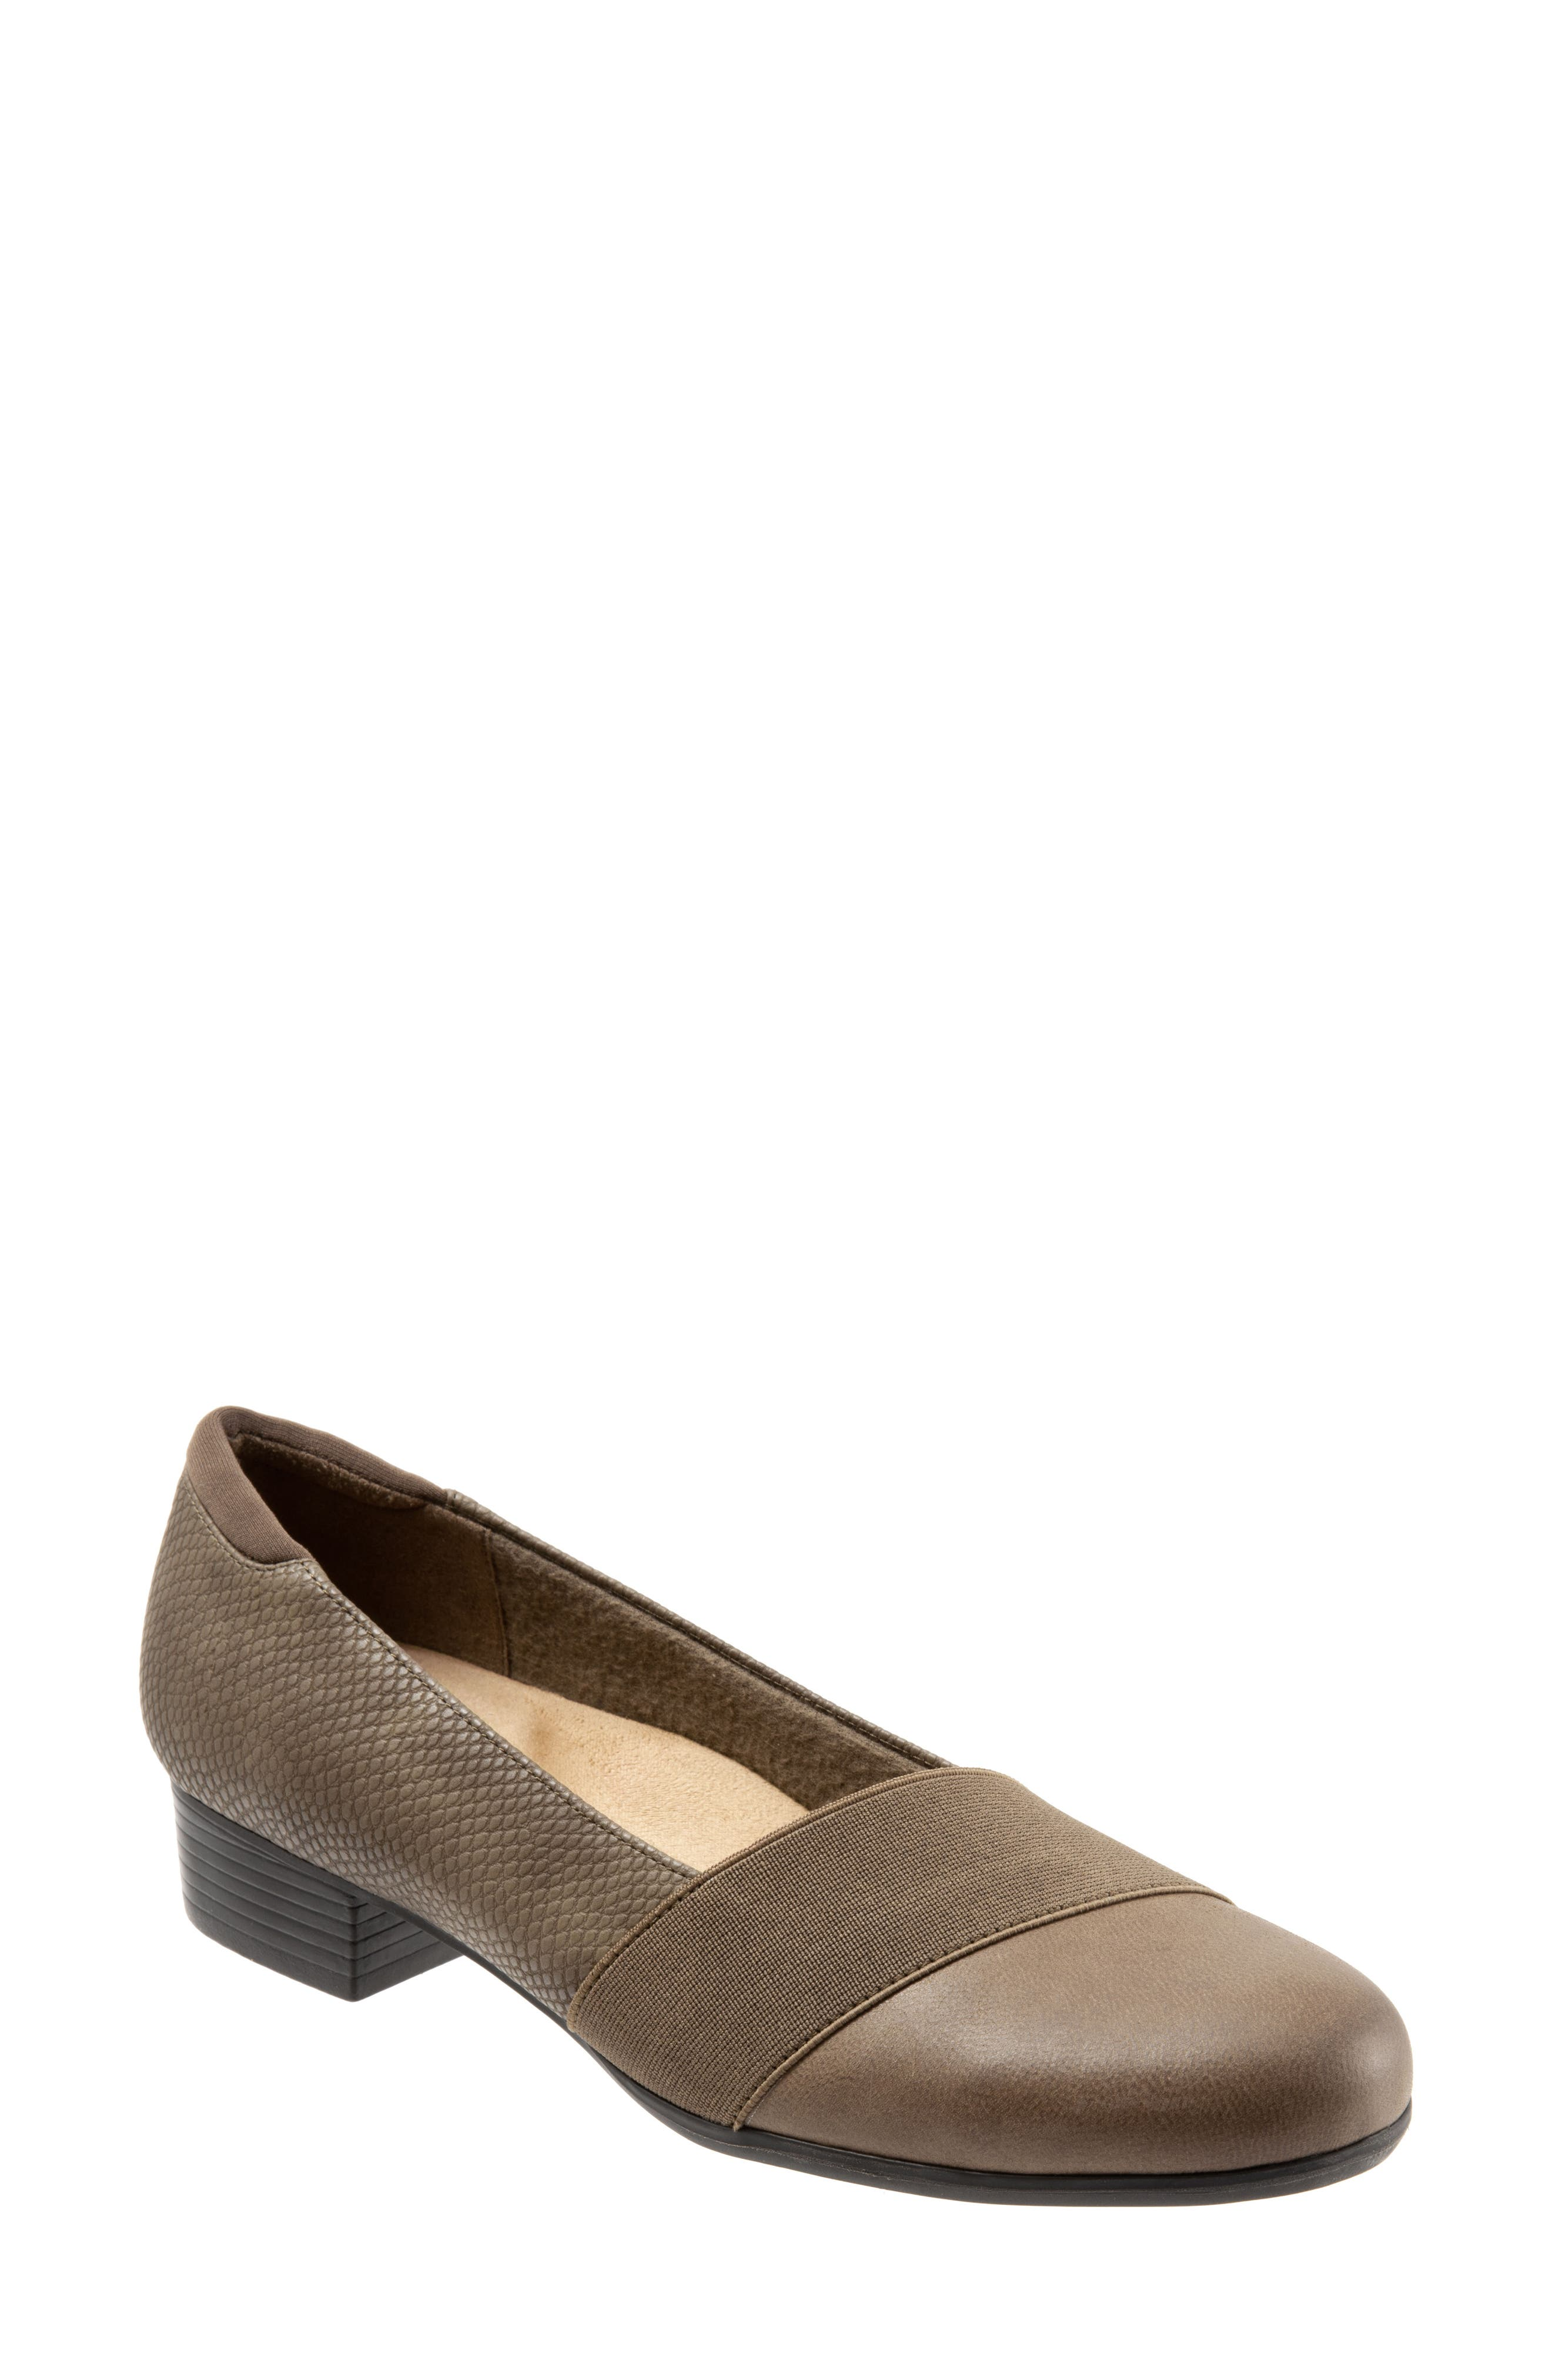 Melinda Loafer,                             Main thumbnail 1, color,                             DARK TAUPE LEATHER